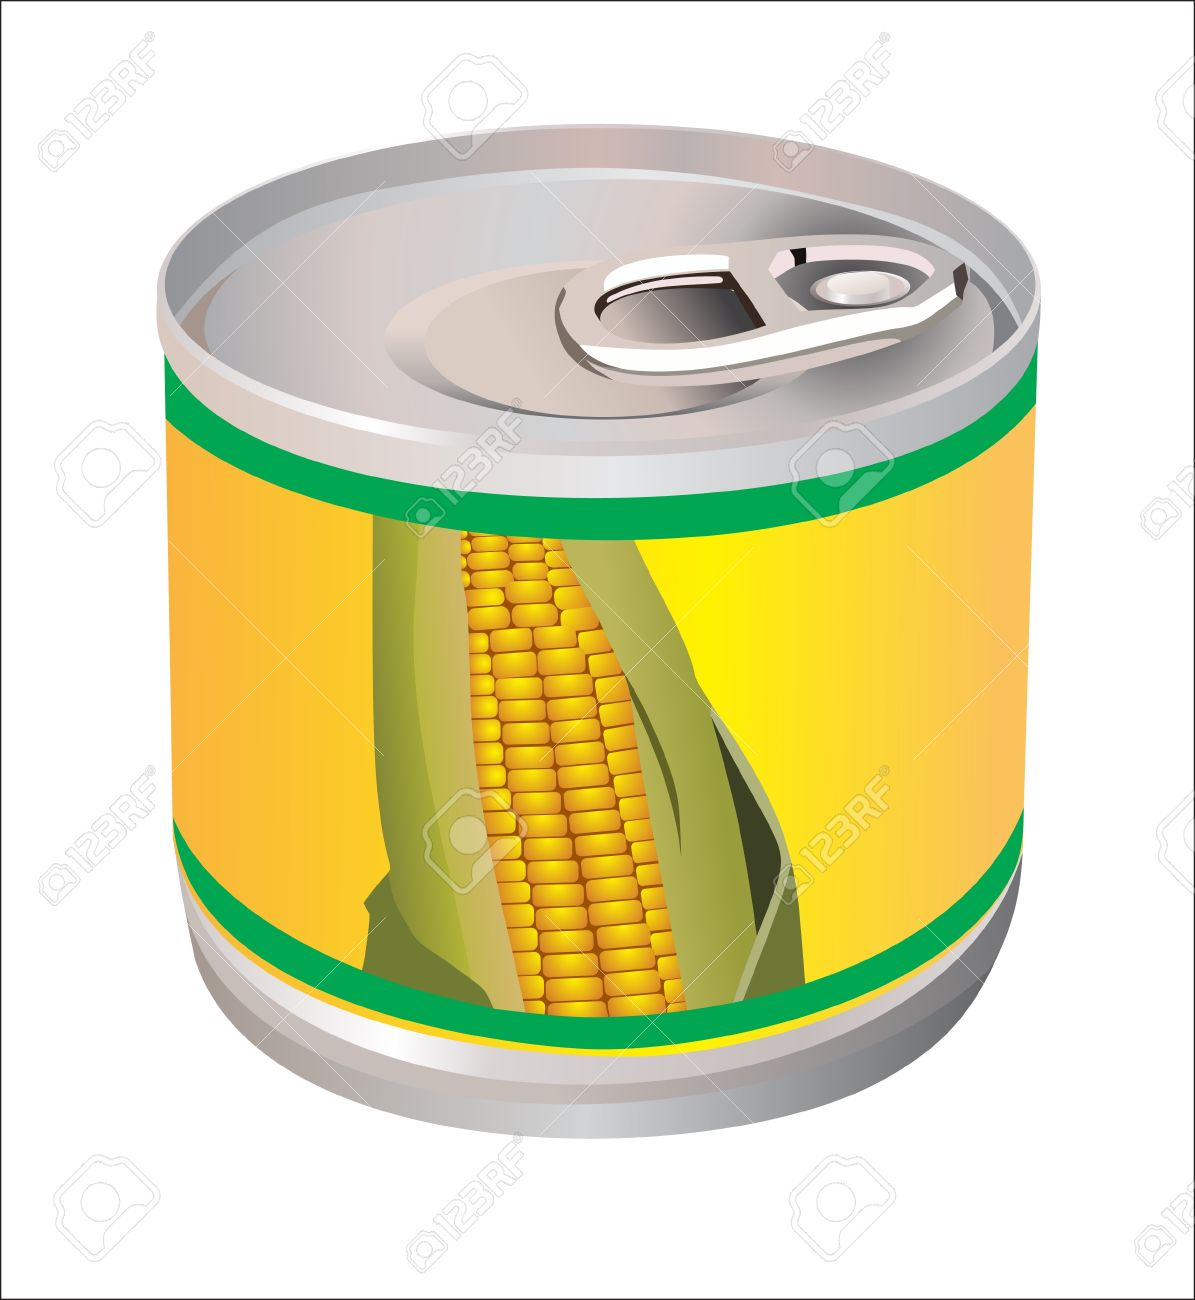 Bank With Corn Isolated In White Royalty Free Cliparts, Vectors.